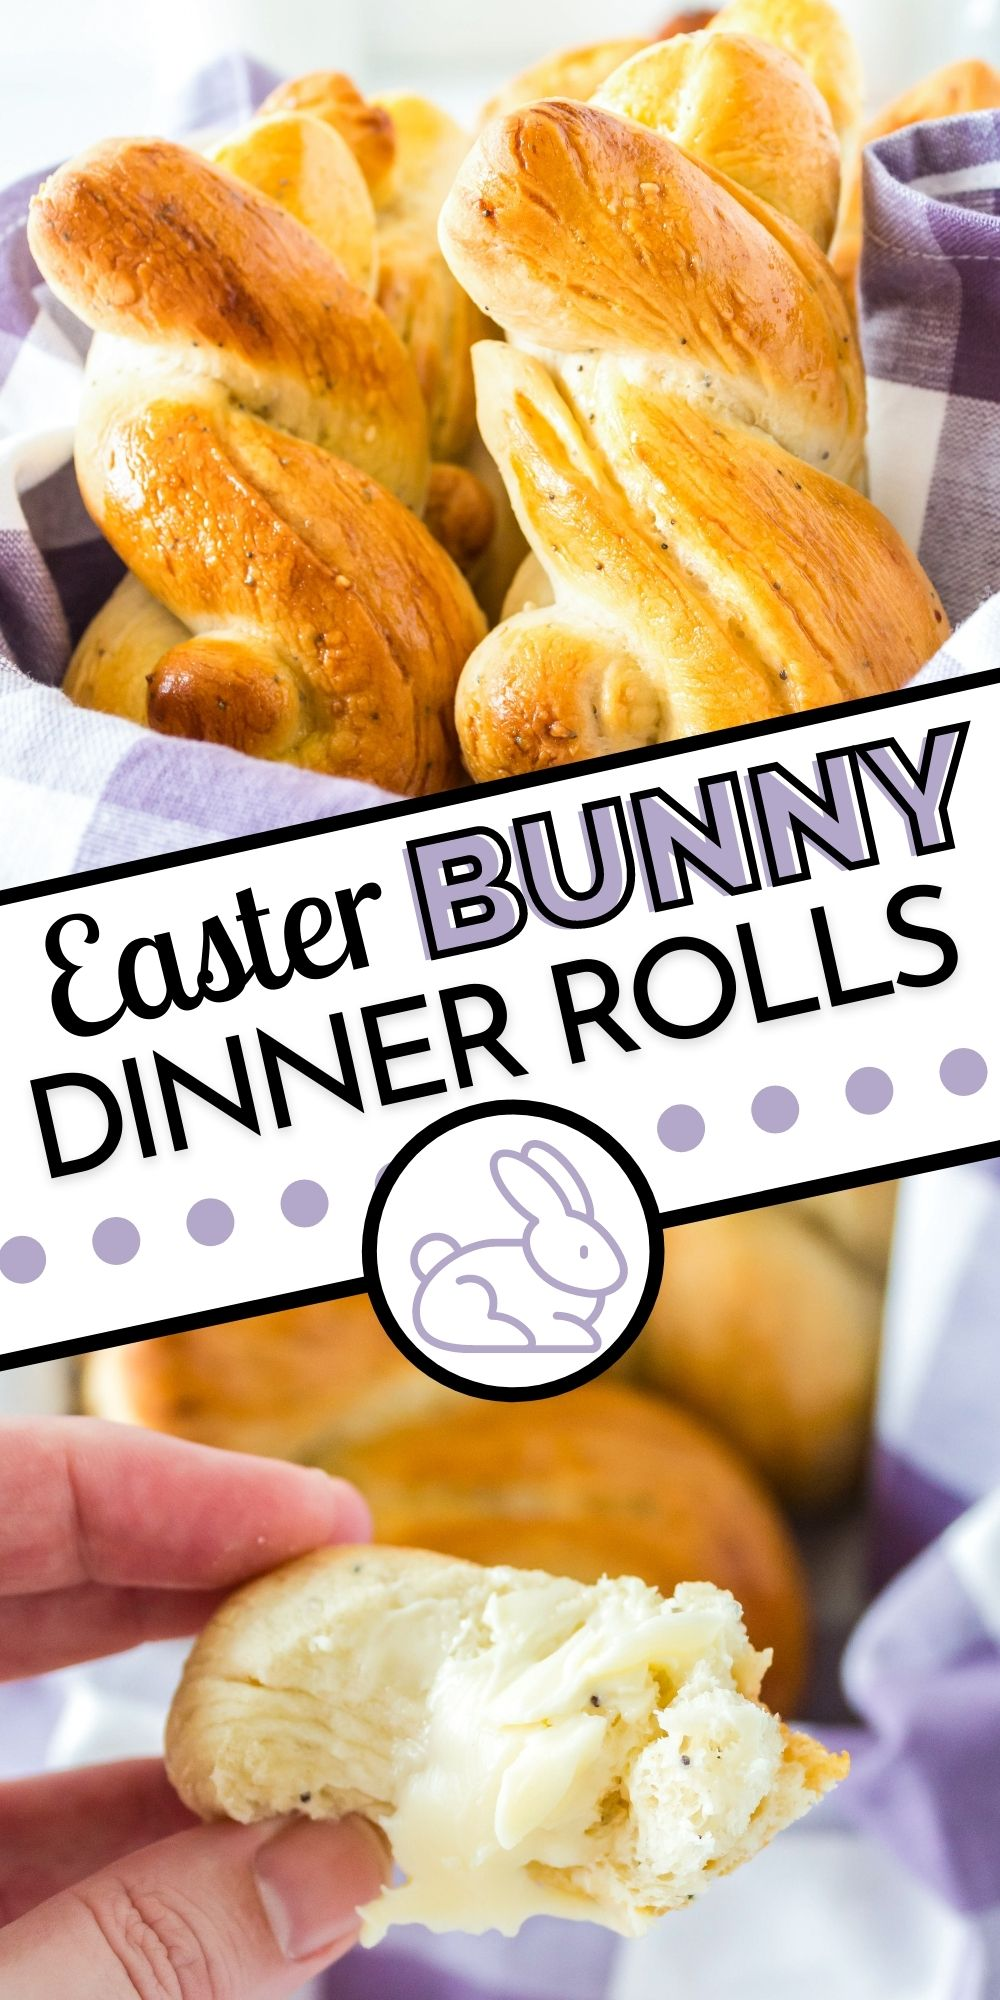 These Easter Bunny Rolls are fun and festive dinner rolls for your Easter dinner. They're flavored with garlic, onion powder, sesame seeds, and poppy seeds. via @easybudgetrecipes